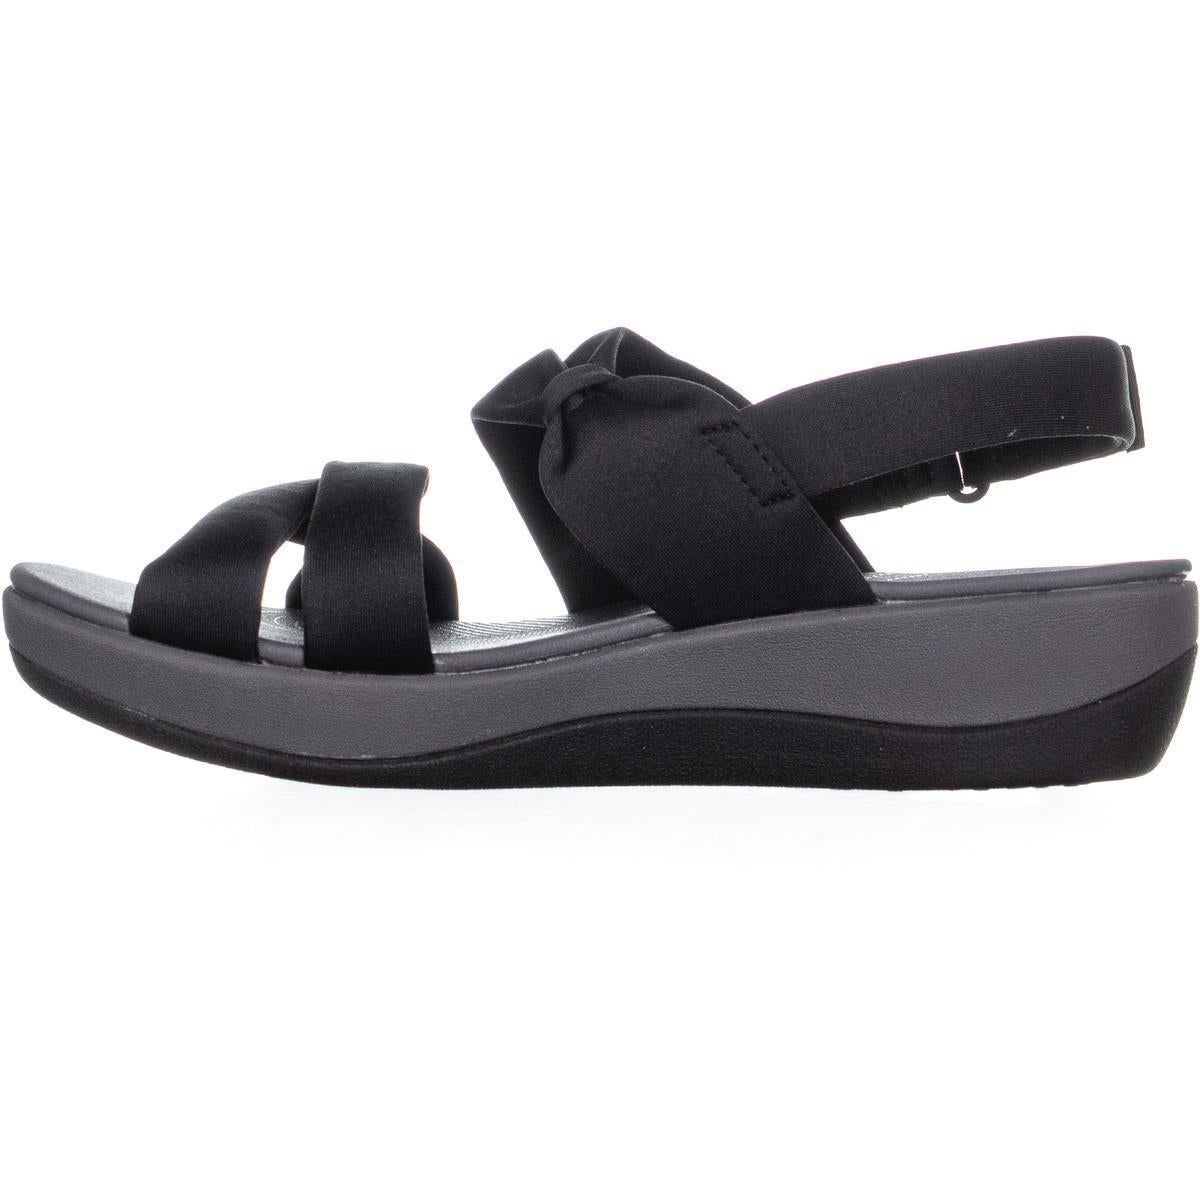 1e4bb263195 Shop Cloudsteppers by Clarks Arla Mae Bow Sandals